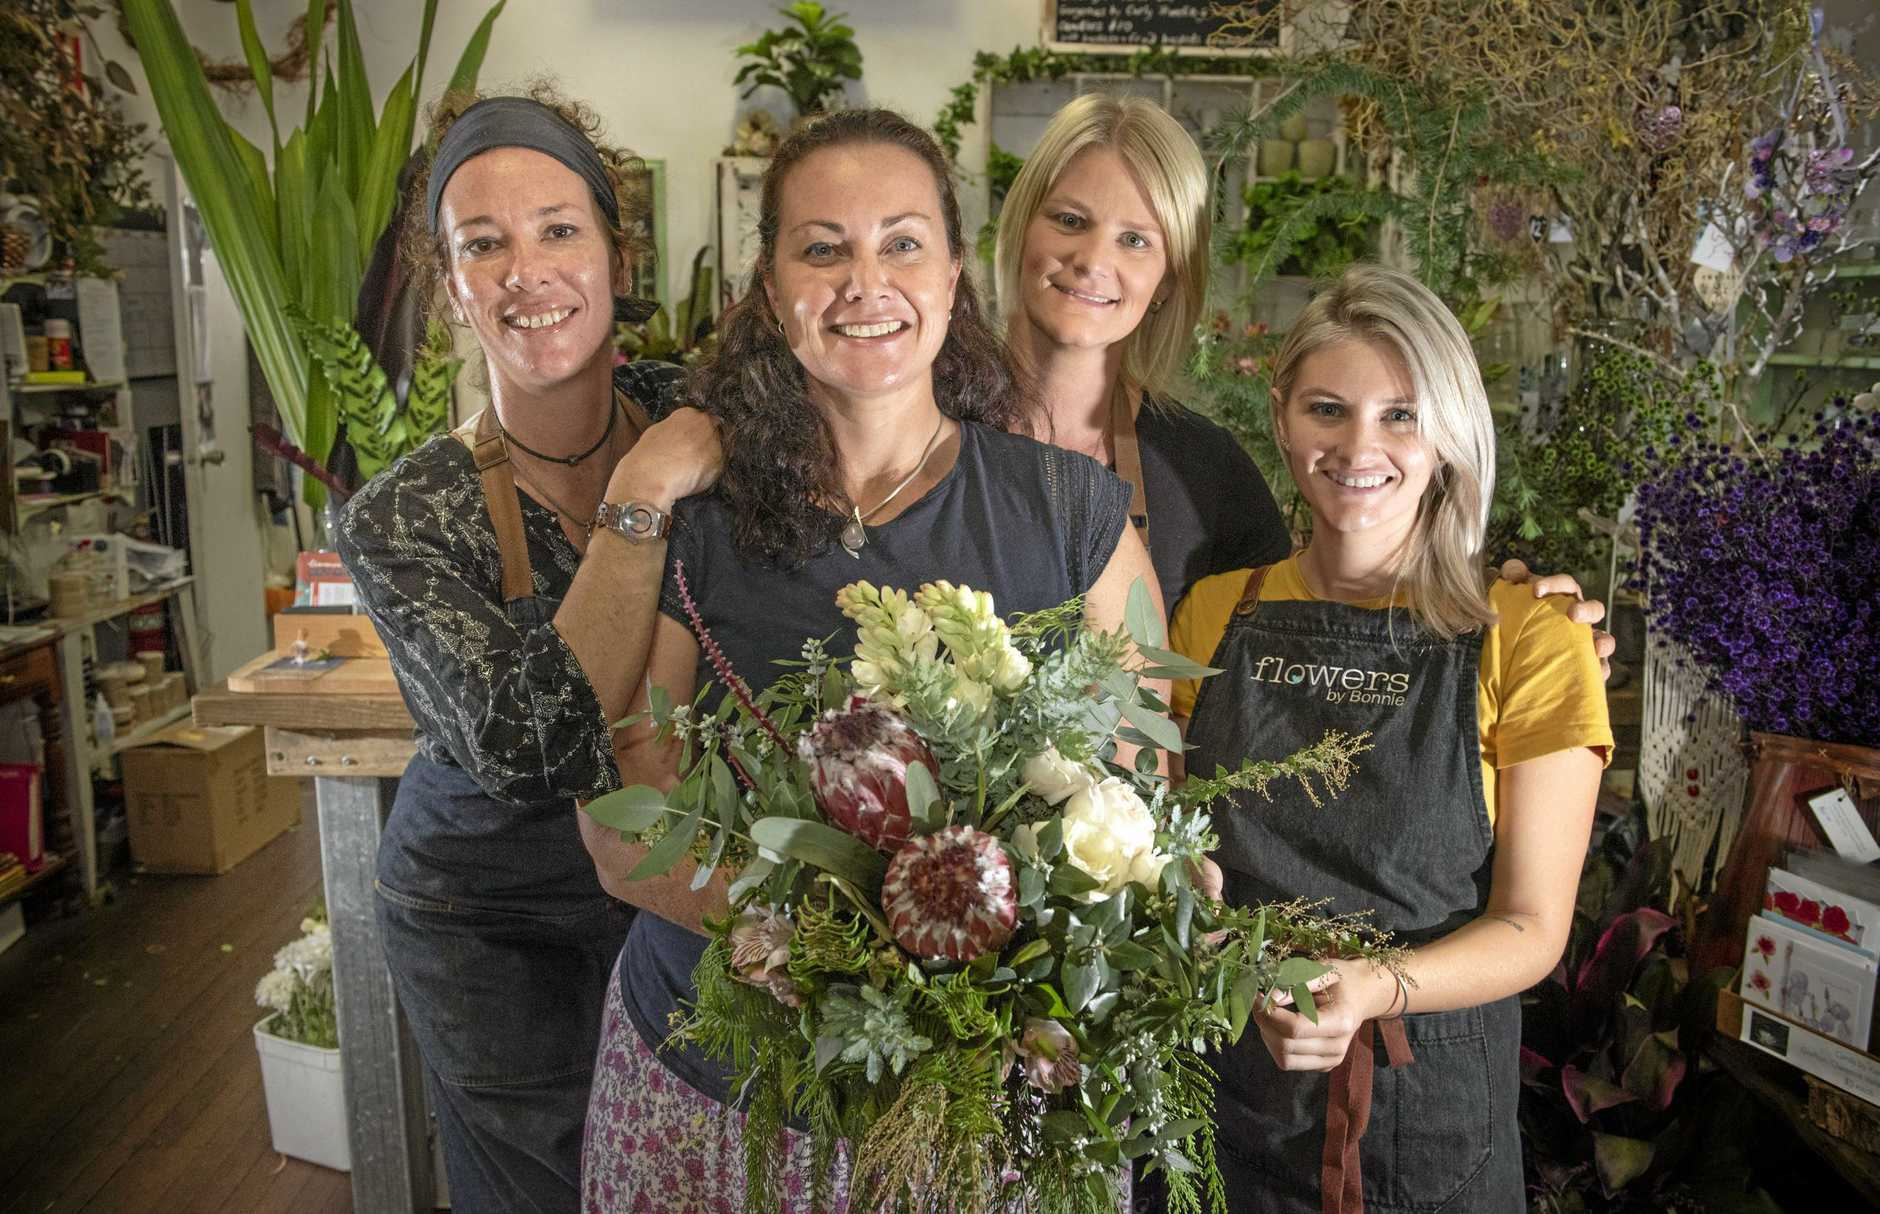 Renee Nicholson, Bonnie McGowan, Rayonnie Clarke and Hope McGowa all get in the floral action at Flowers by Bonnie - who won the Mid North Coast Brides Choice award for best florist.